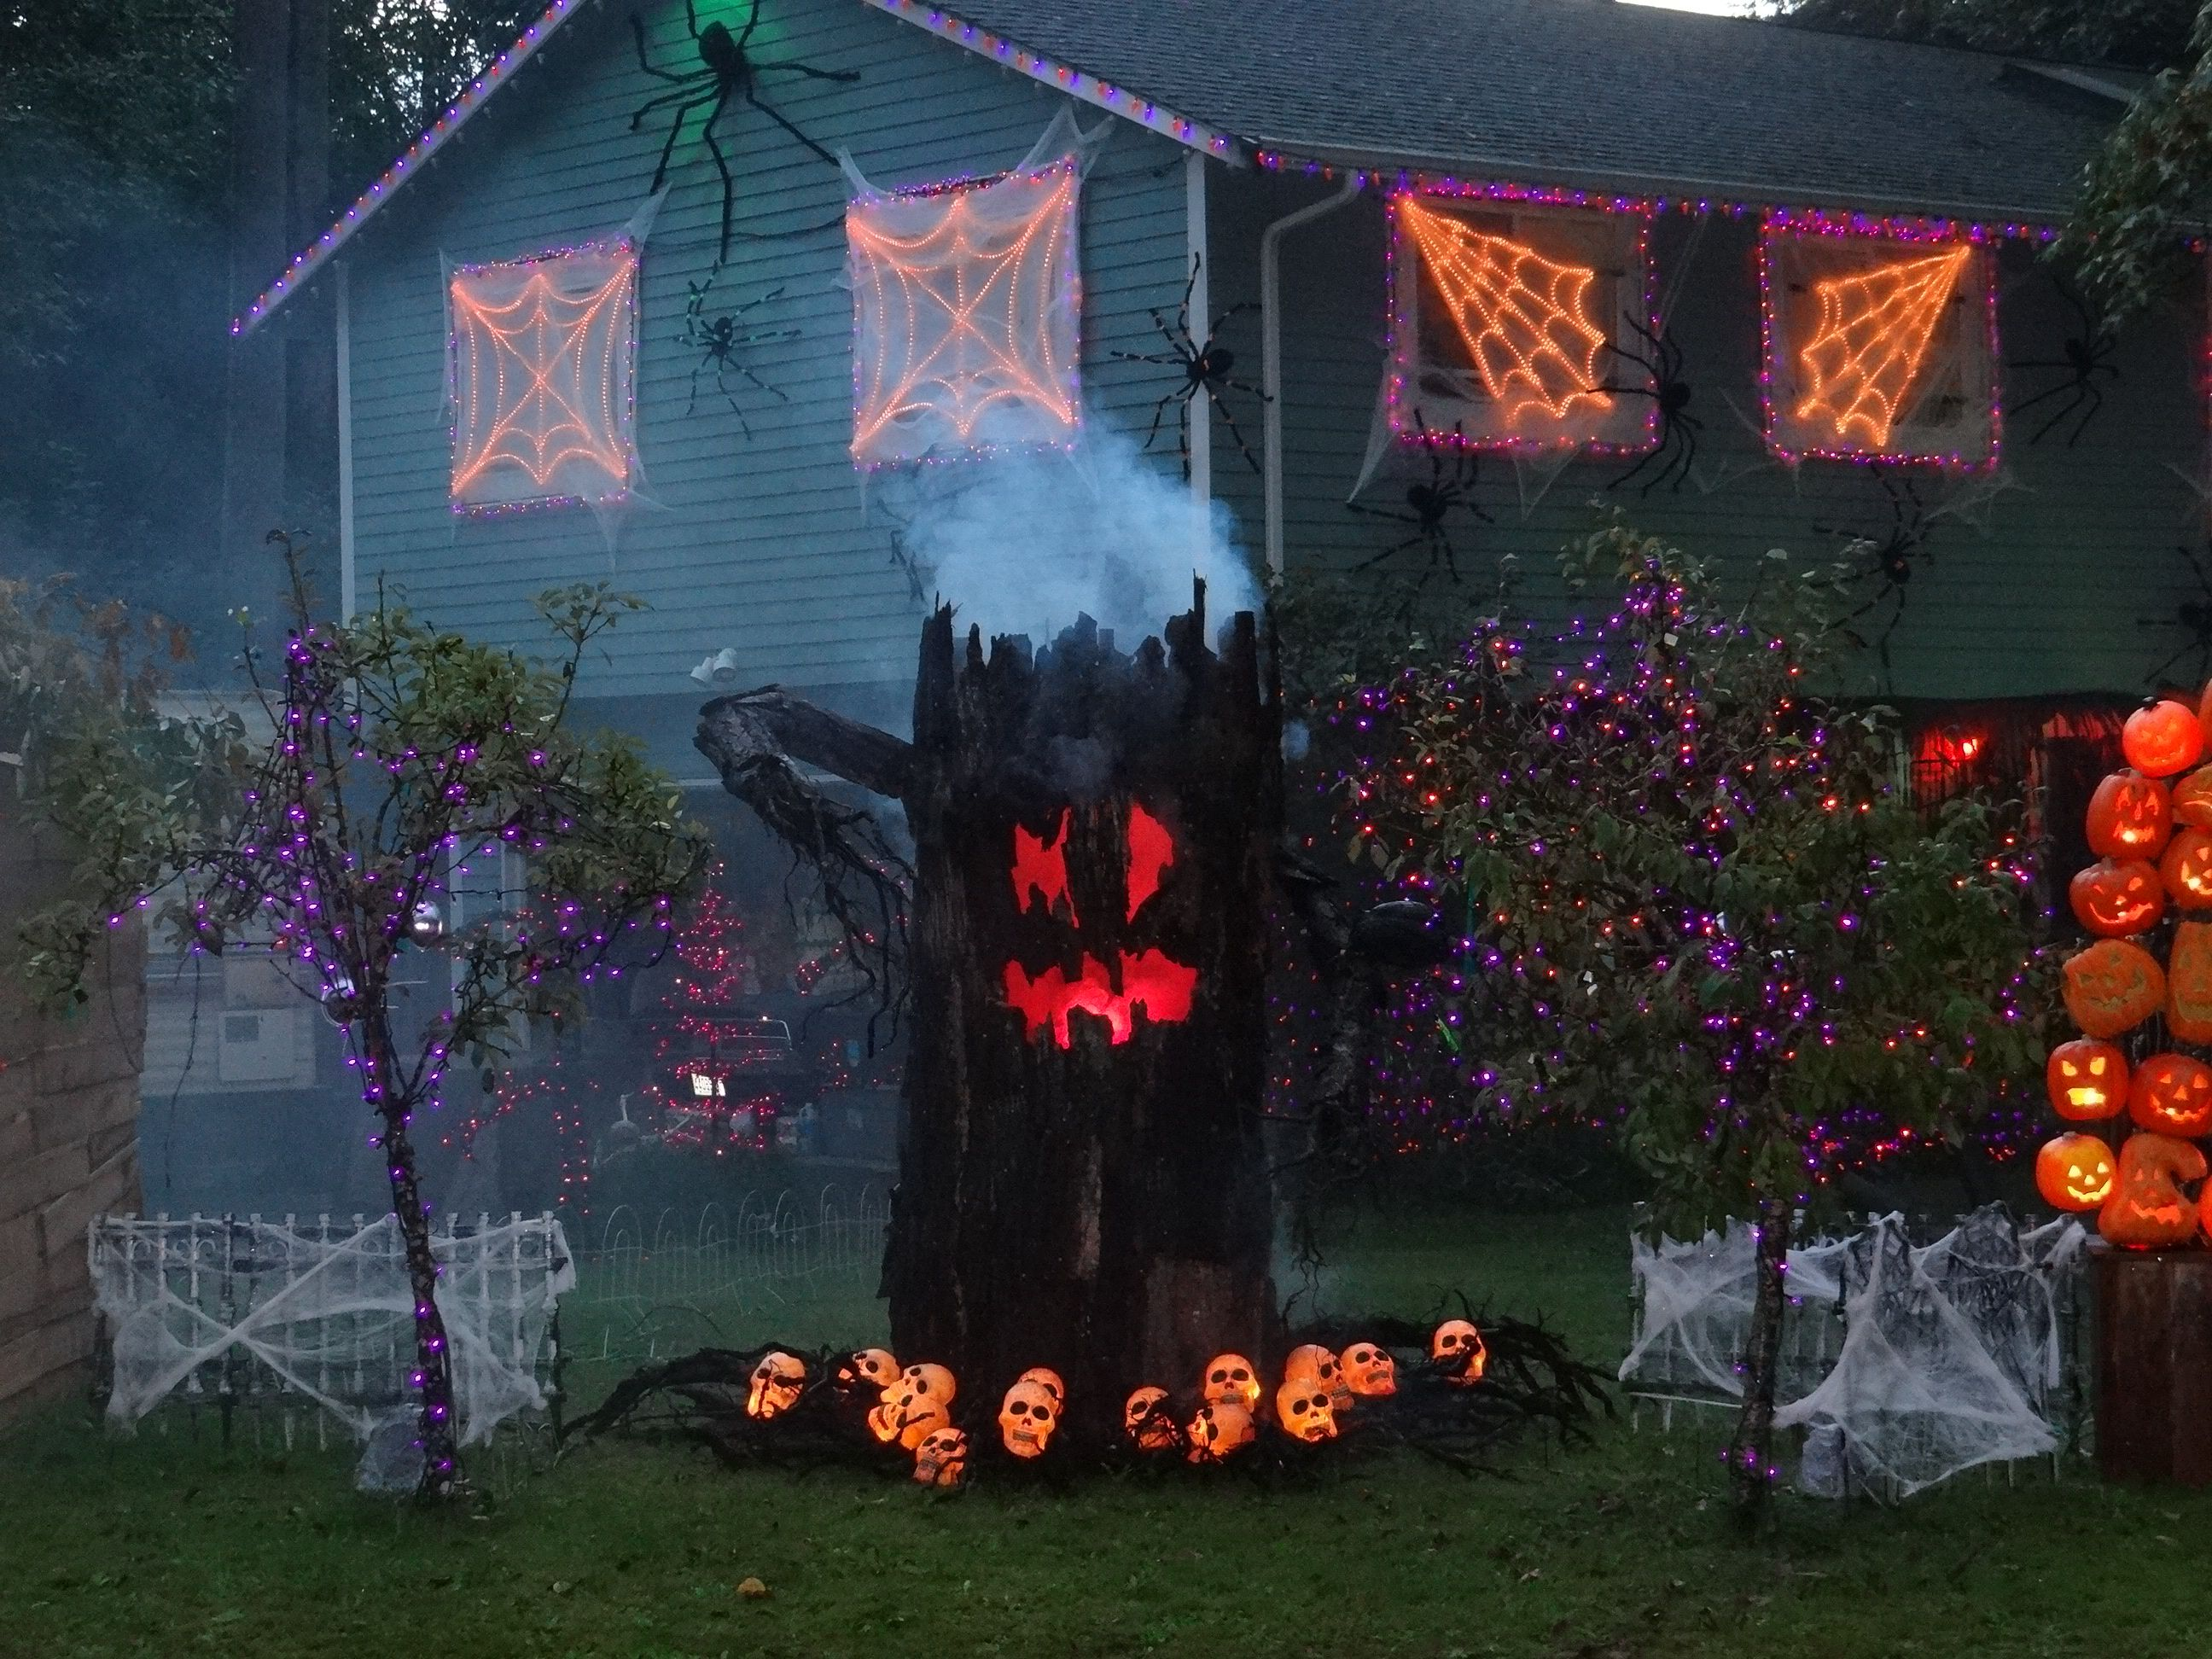 decoration cool decorating halloween outdoor with scary black tree and spyder also pumpkins for halloween outdoor design ideas wonderful halloween outdoor - Cheap Halloween Decoration Ideas Outdoor